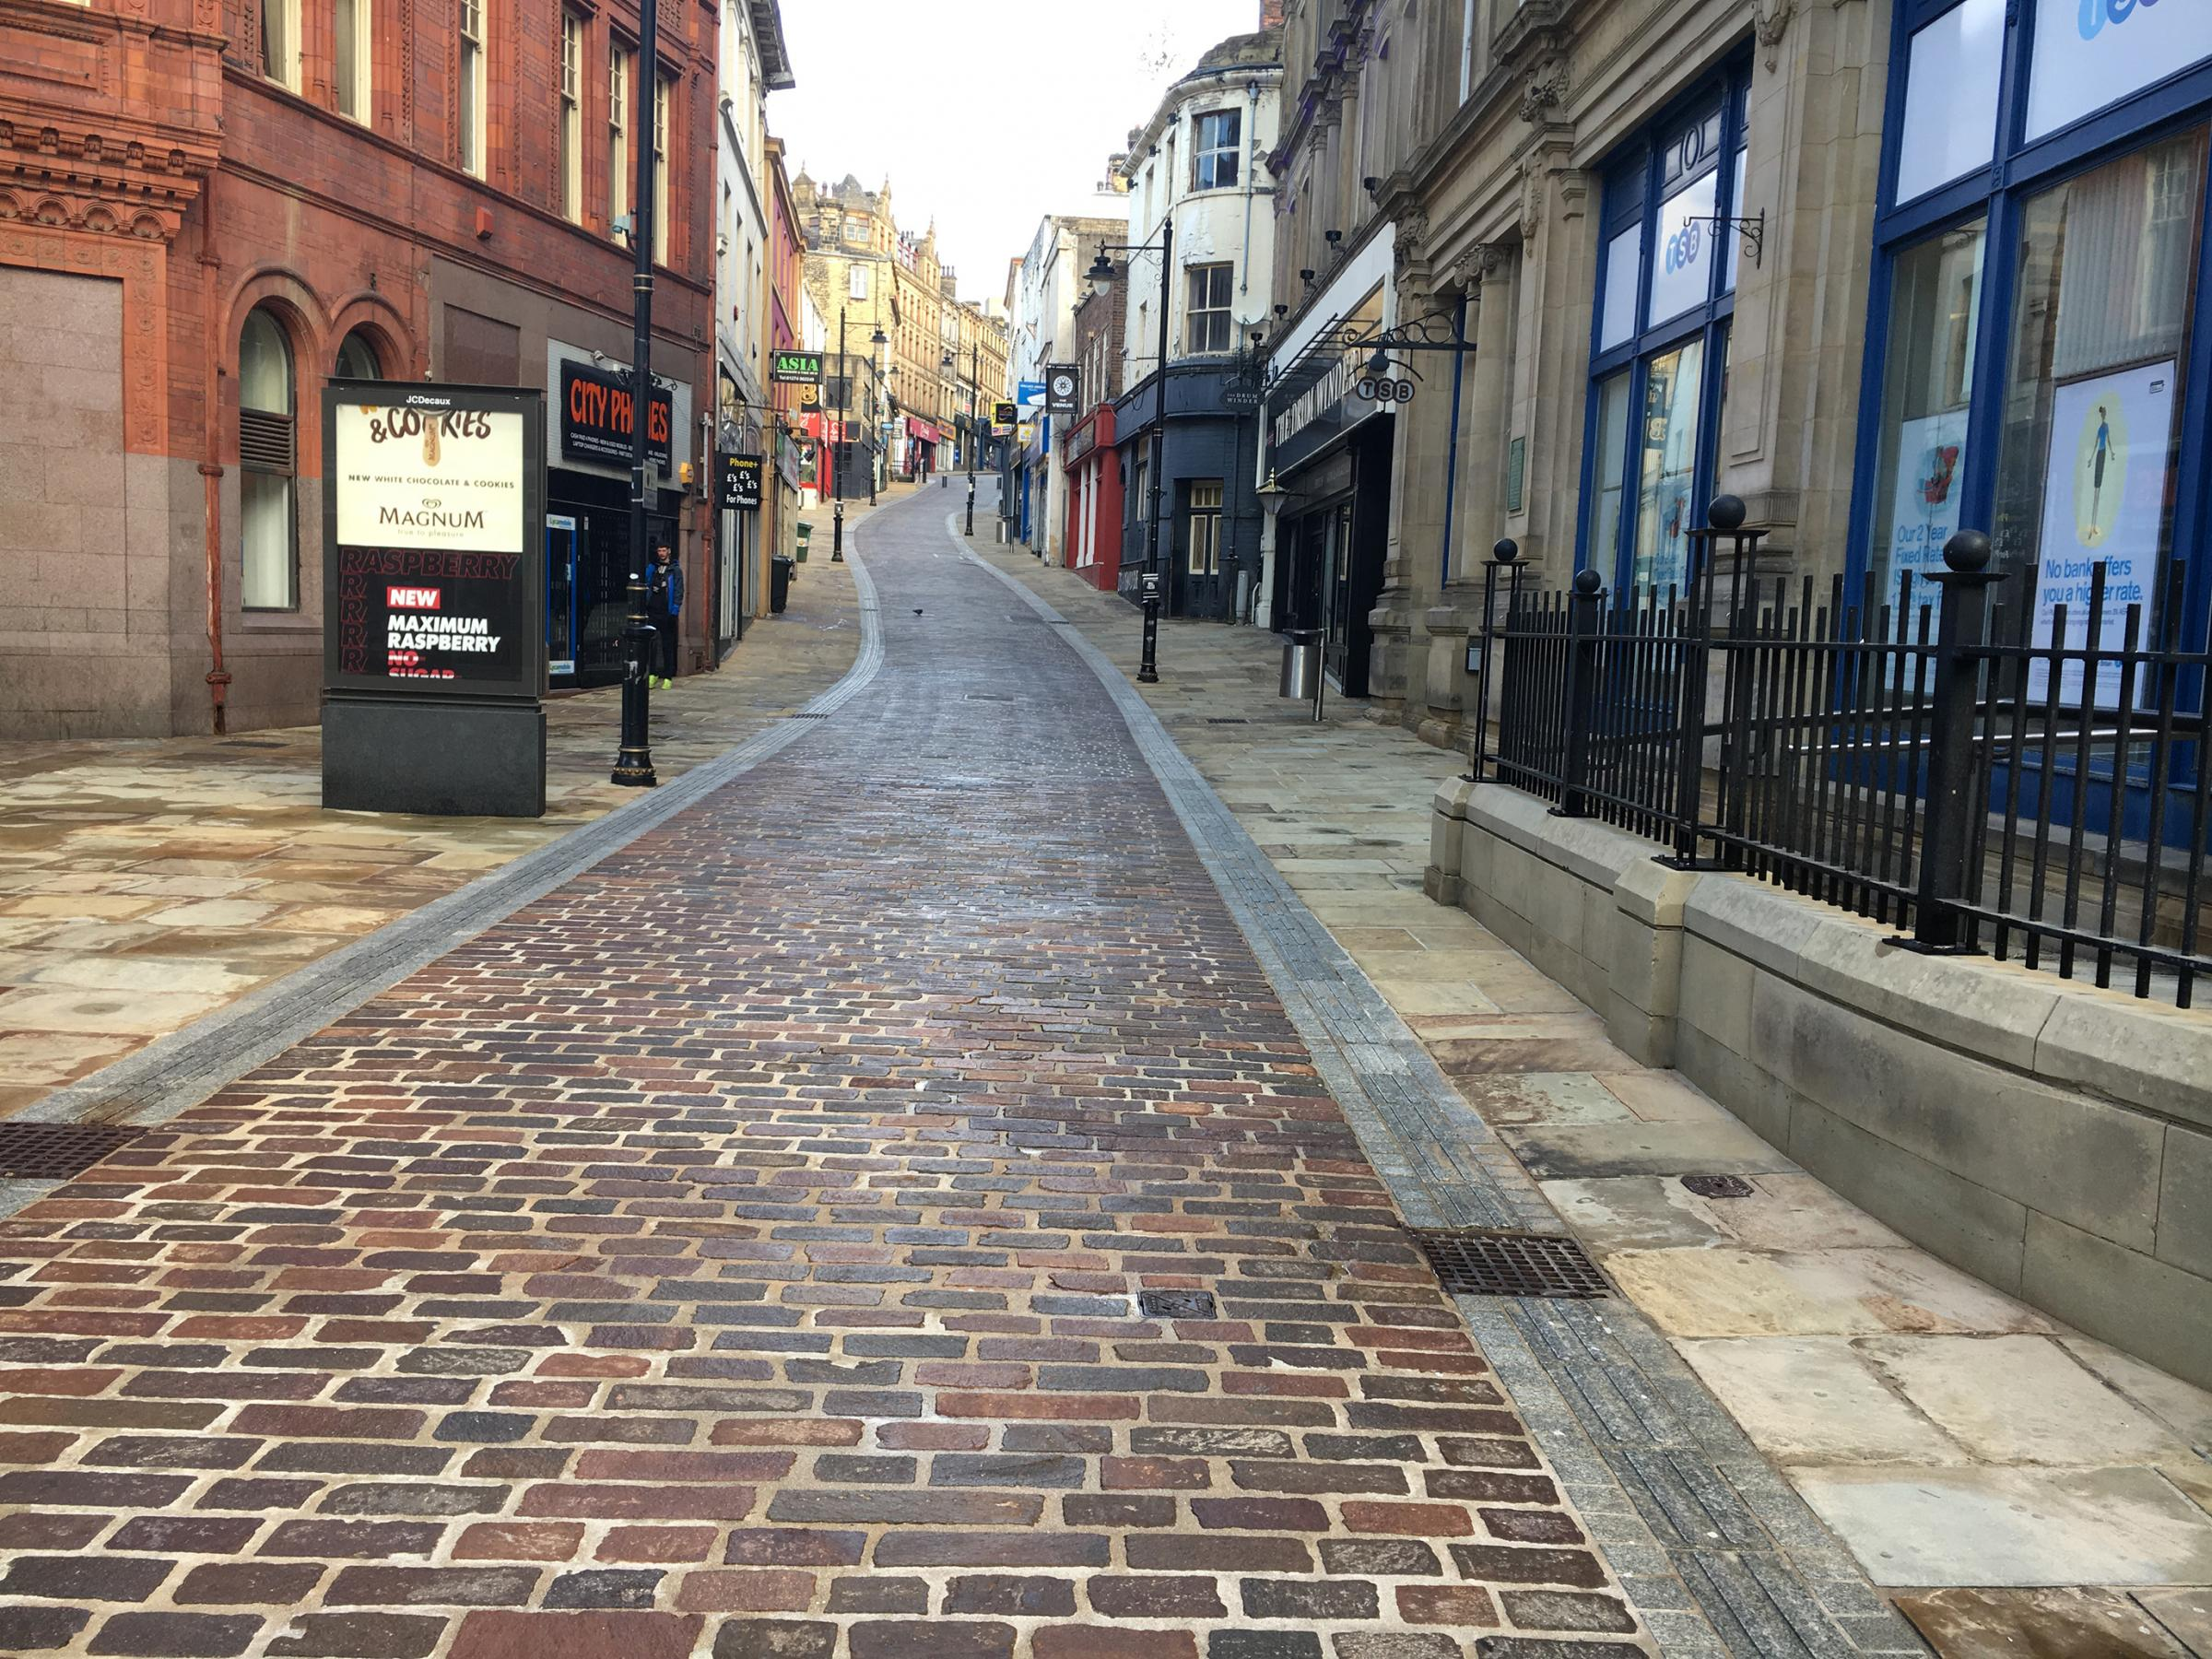 Bradford misses out on funding to revive historic high streets - but Leeds, Huddersfield and Skipton get money